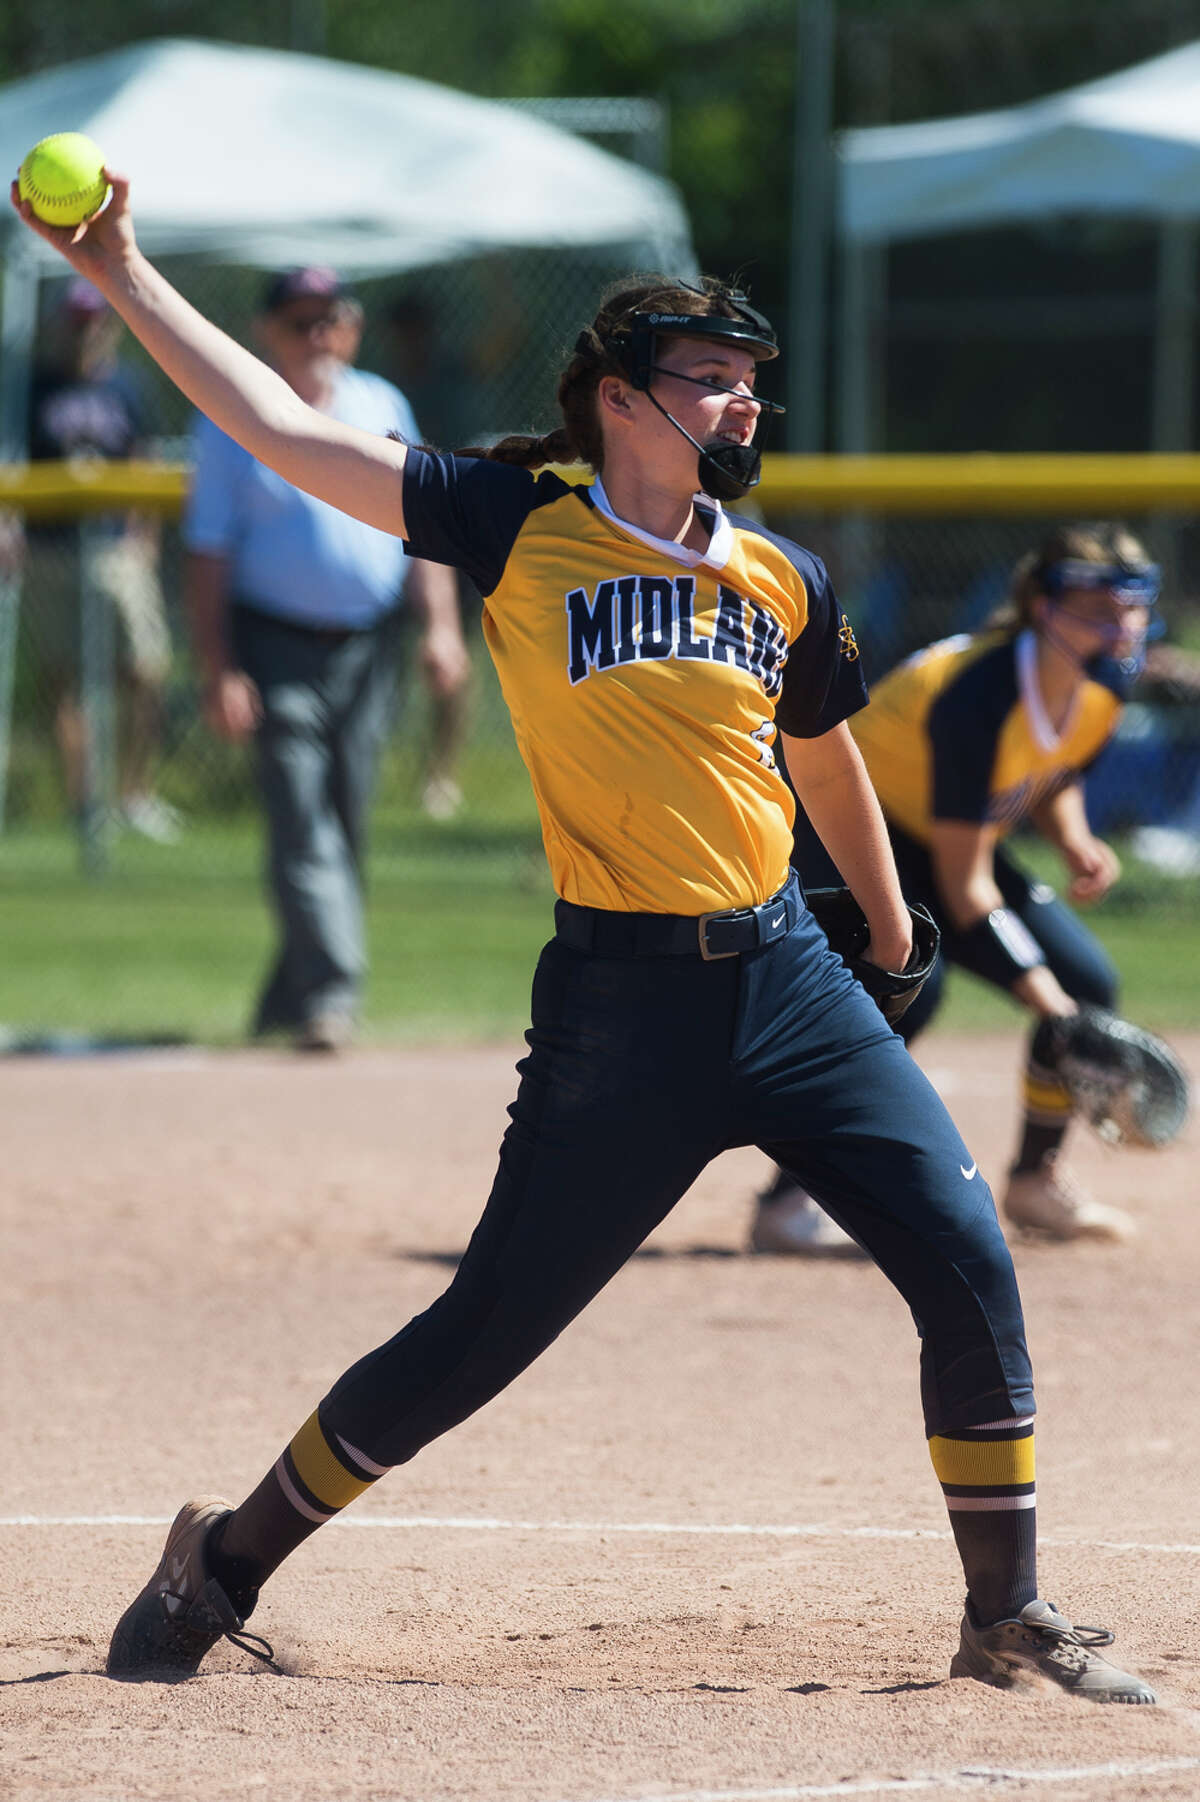 Midland's Rachel Mecca pitches the ball during the Chemics' game against Dow Saturday, June 5, 2021 at Bay City Western High School. (Katy Kildee/kkildee@mdn.net)